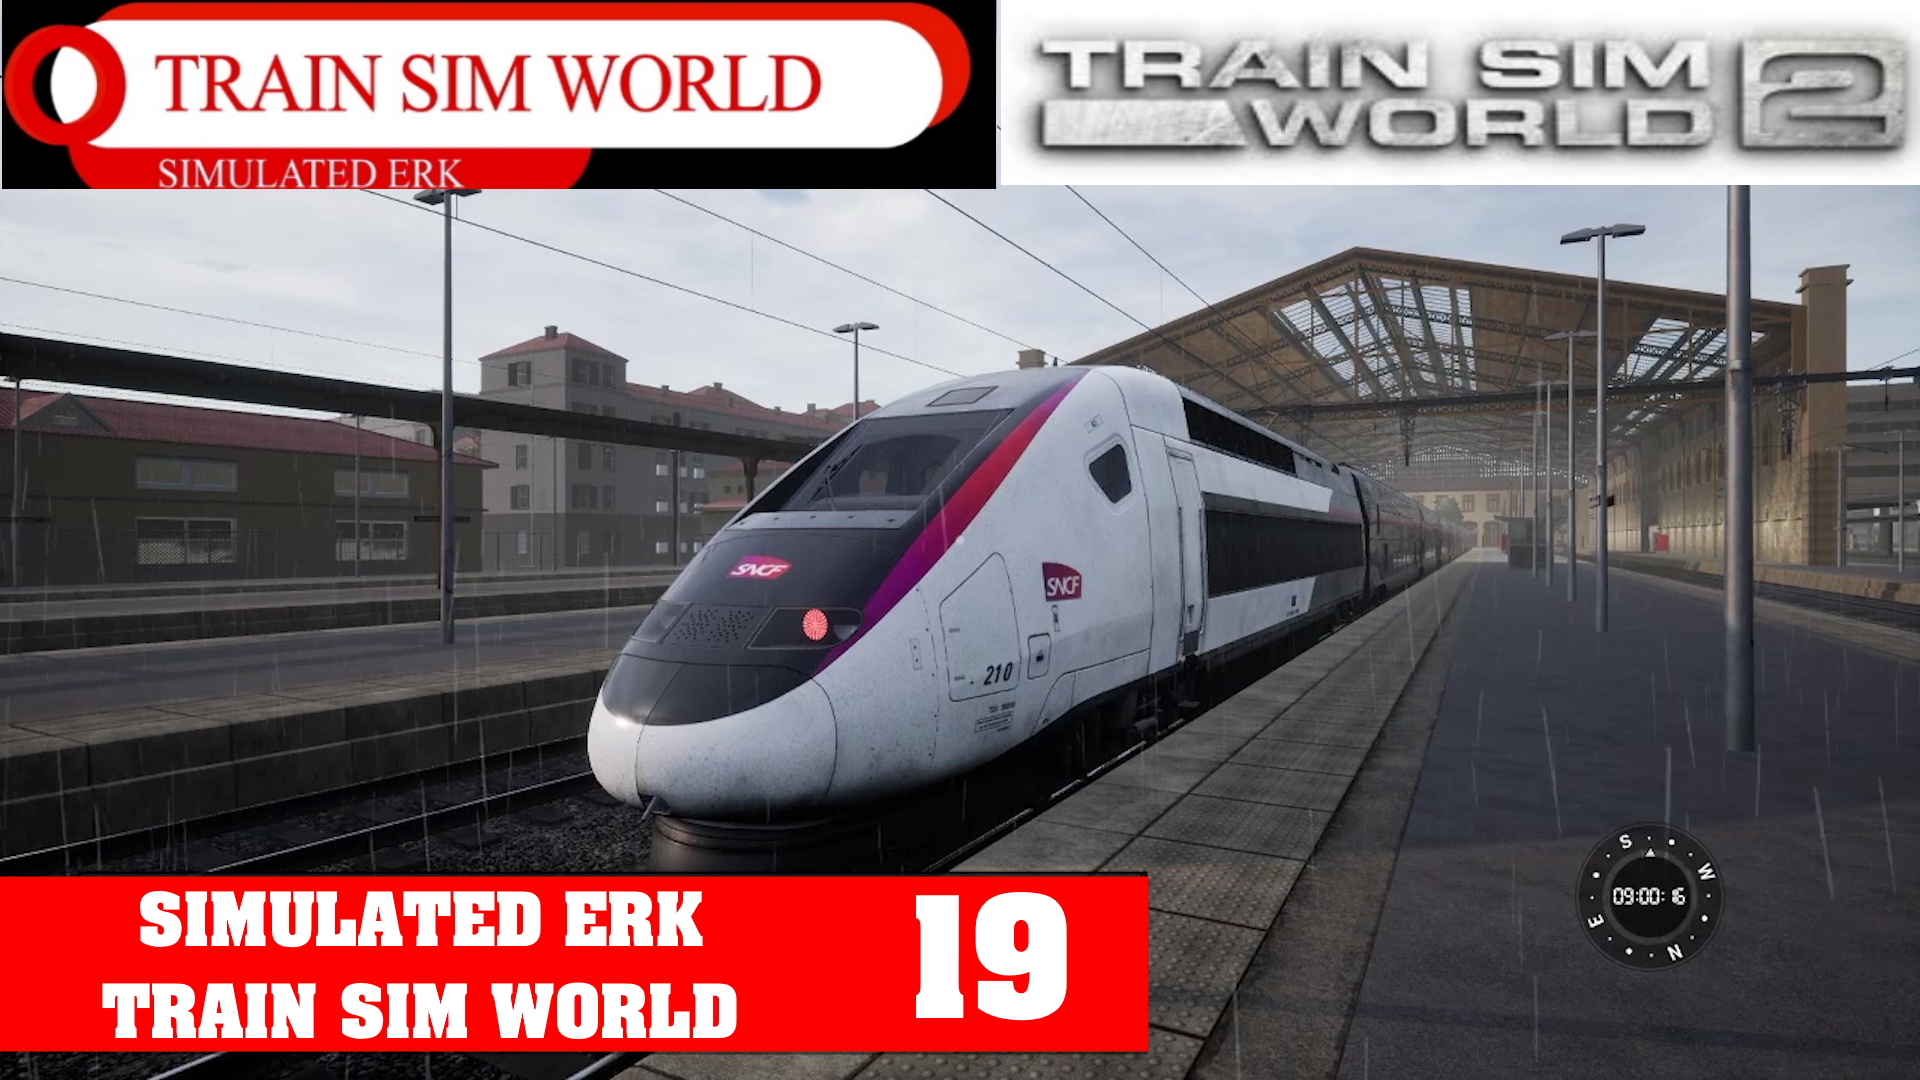 Simulated Erk: Train Sim World episode 19 | TGV Mediterranée Is French For Difficult Training